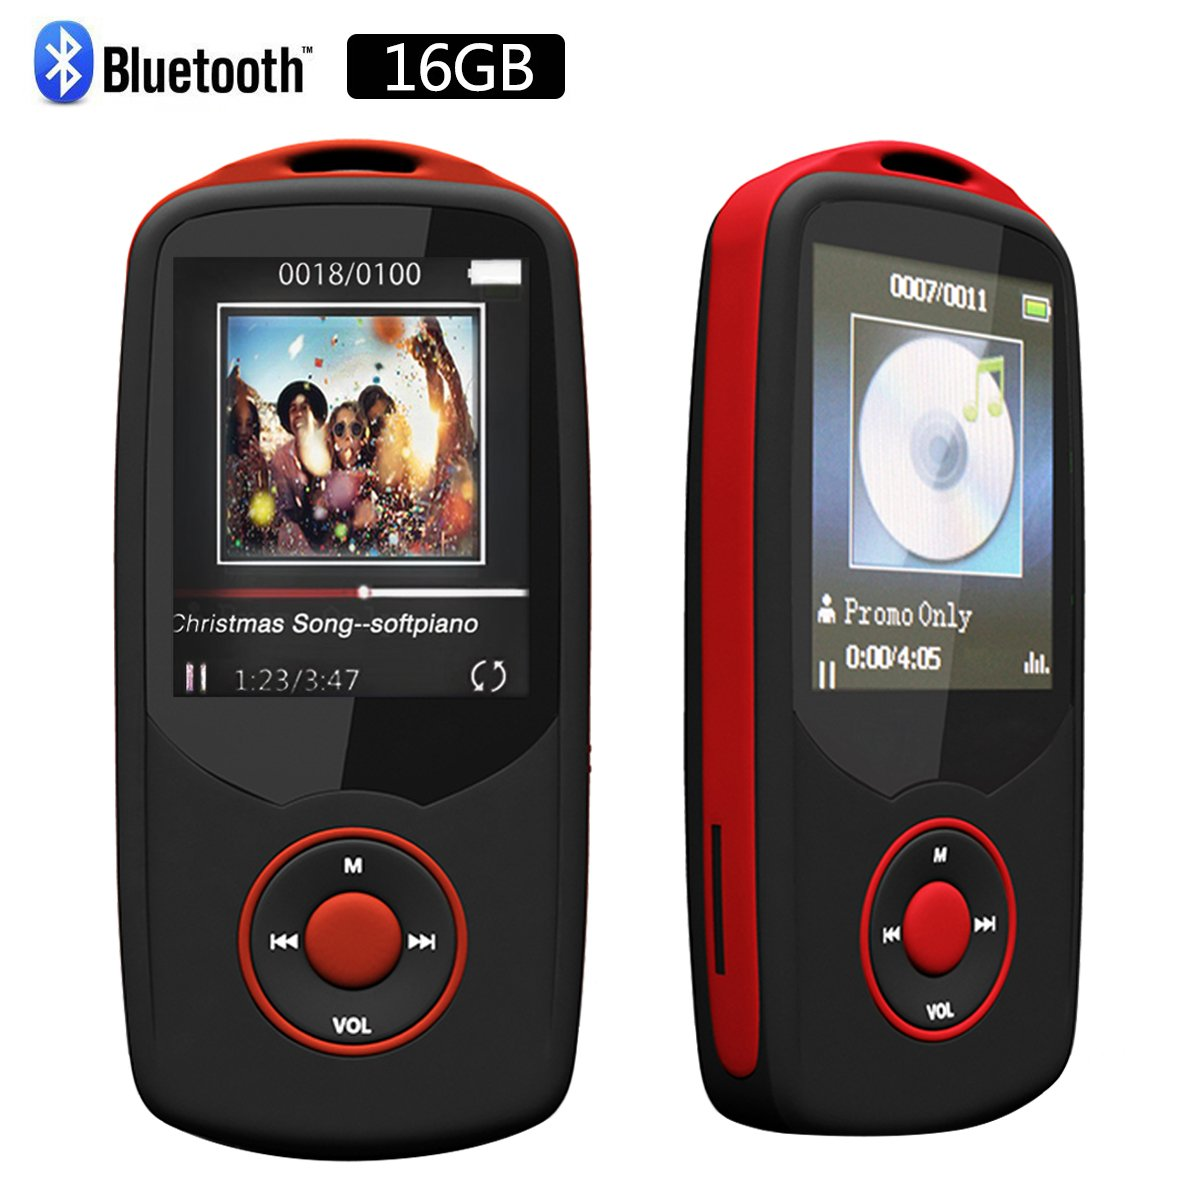 RUIZU Sport Bluetooth 16 GB MP3 Player Hifi Lossless Sound with FM Radio (Easy to operate) -Support up to 64GB Micro SD Card-Red by CFZC